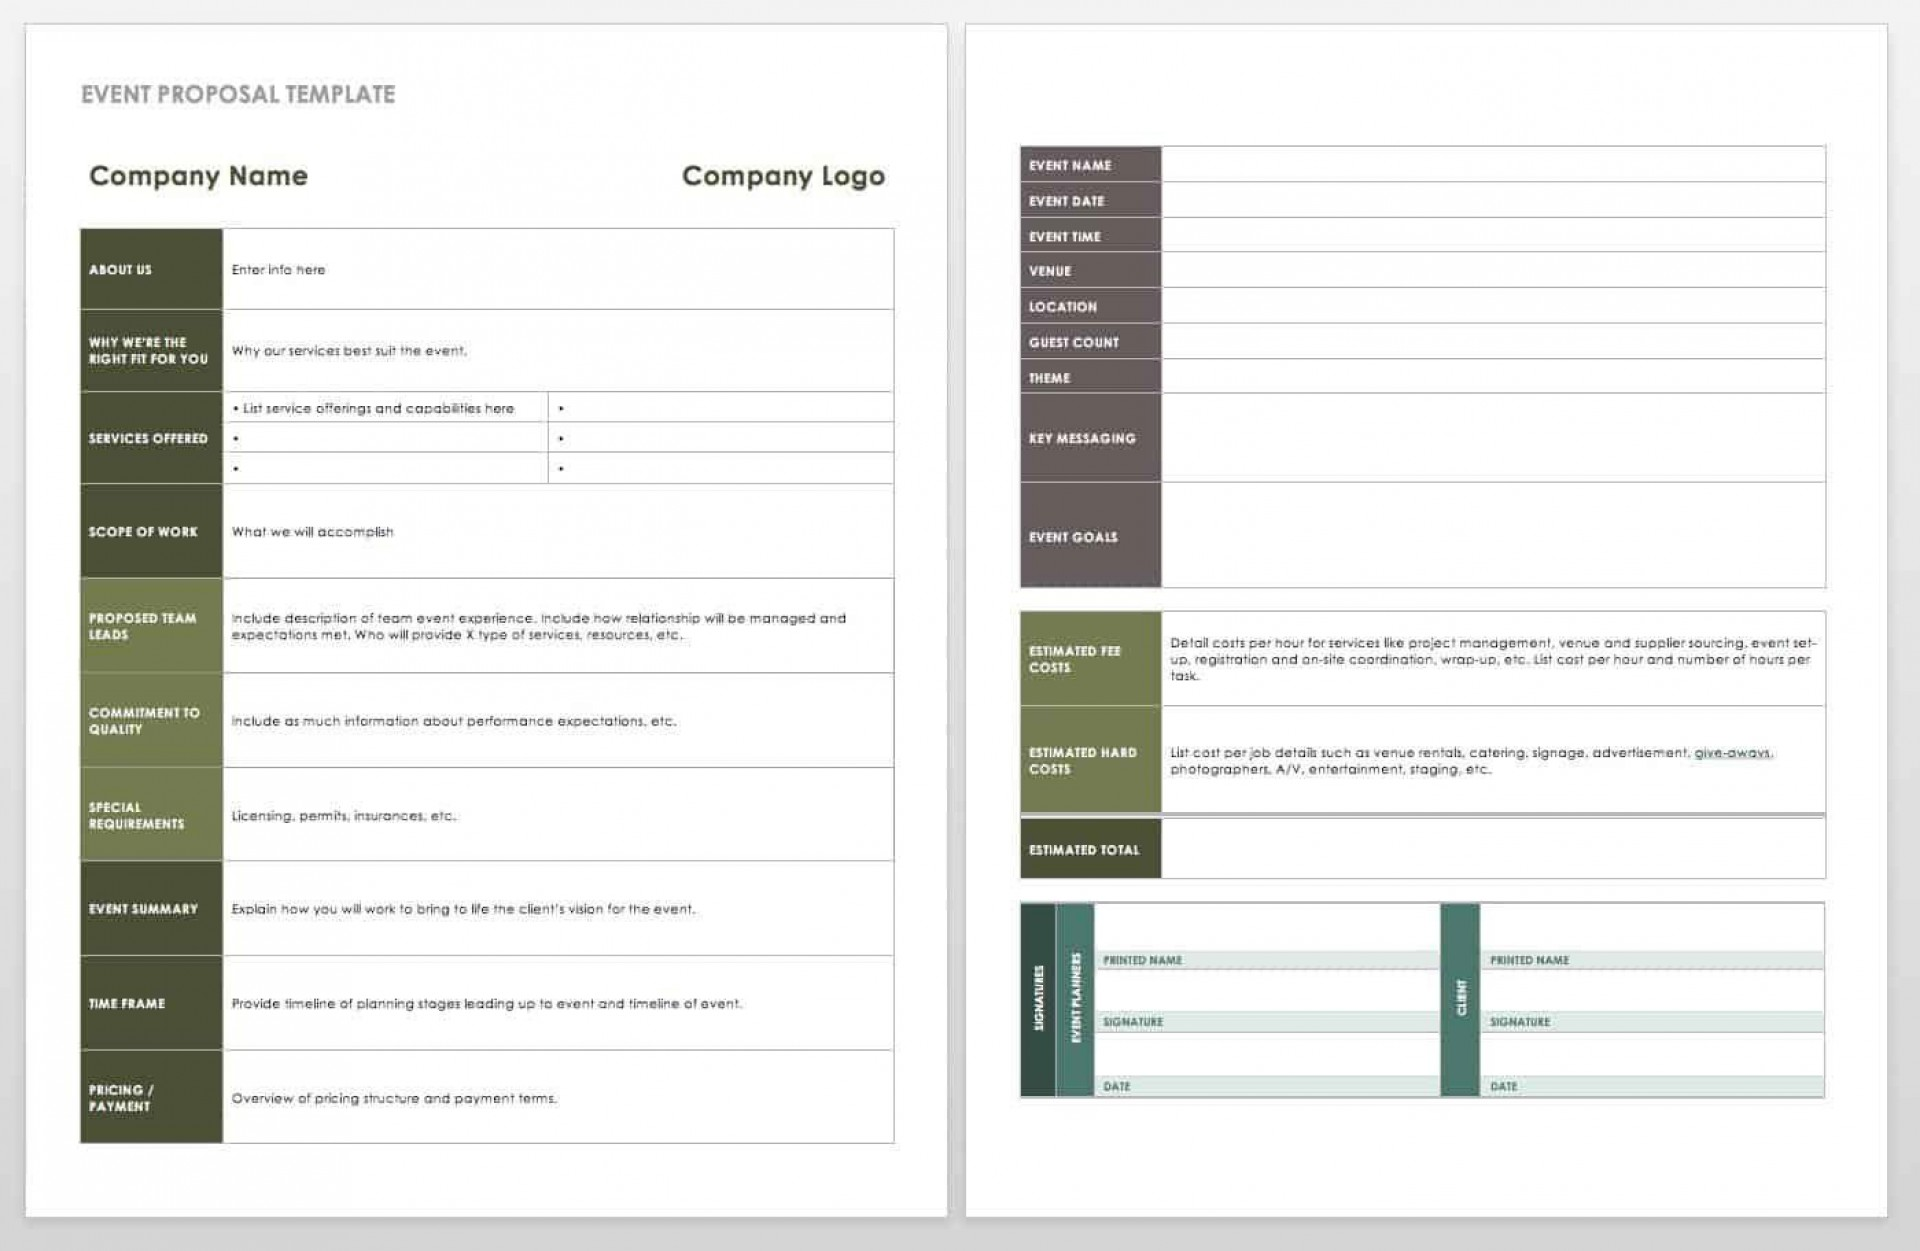 006 Imposing Free Event Checklist Template Word High Resolution  Planning Planner Contract1920